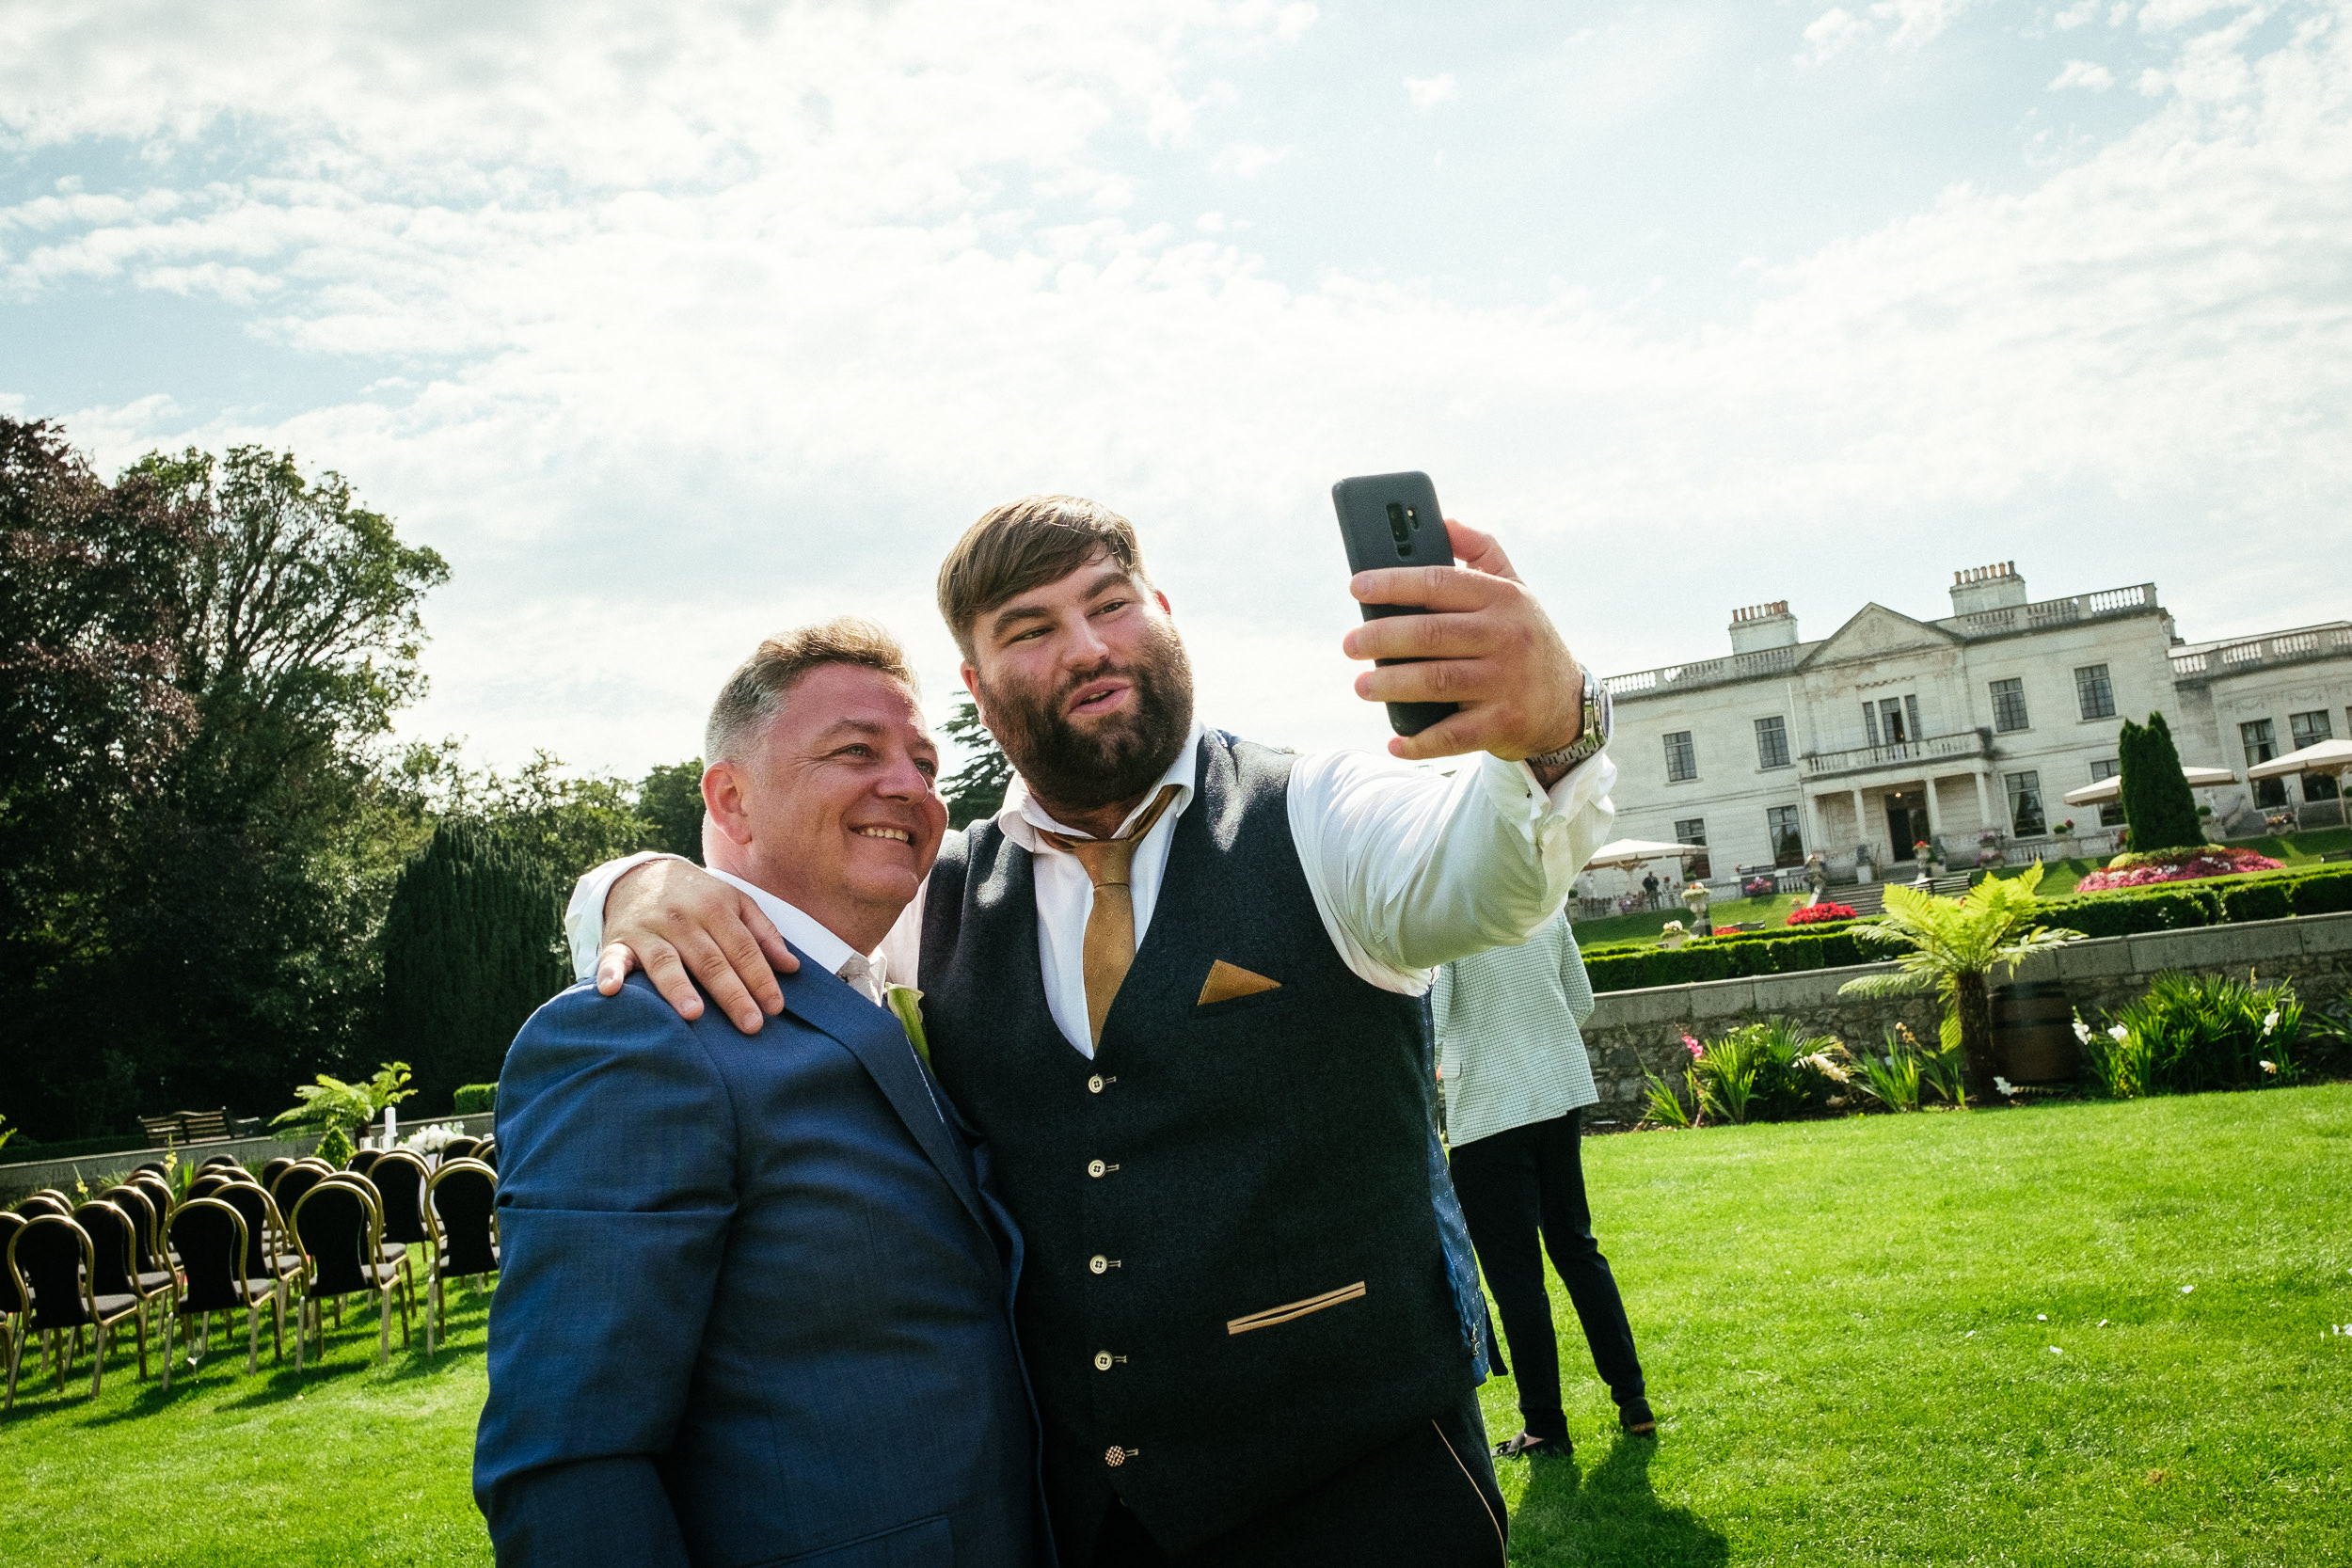 2 wedding guests taking a selfie